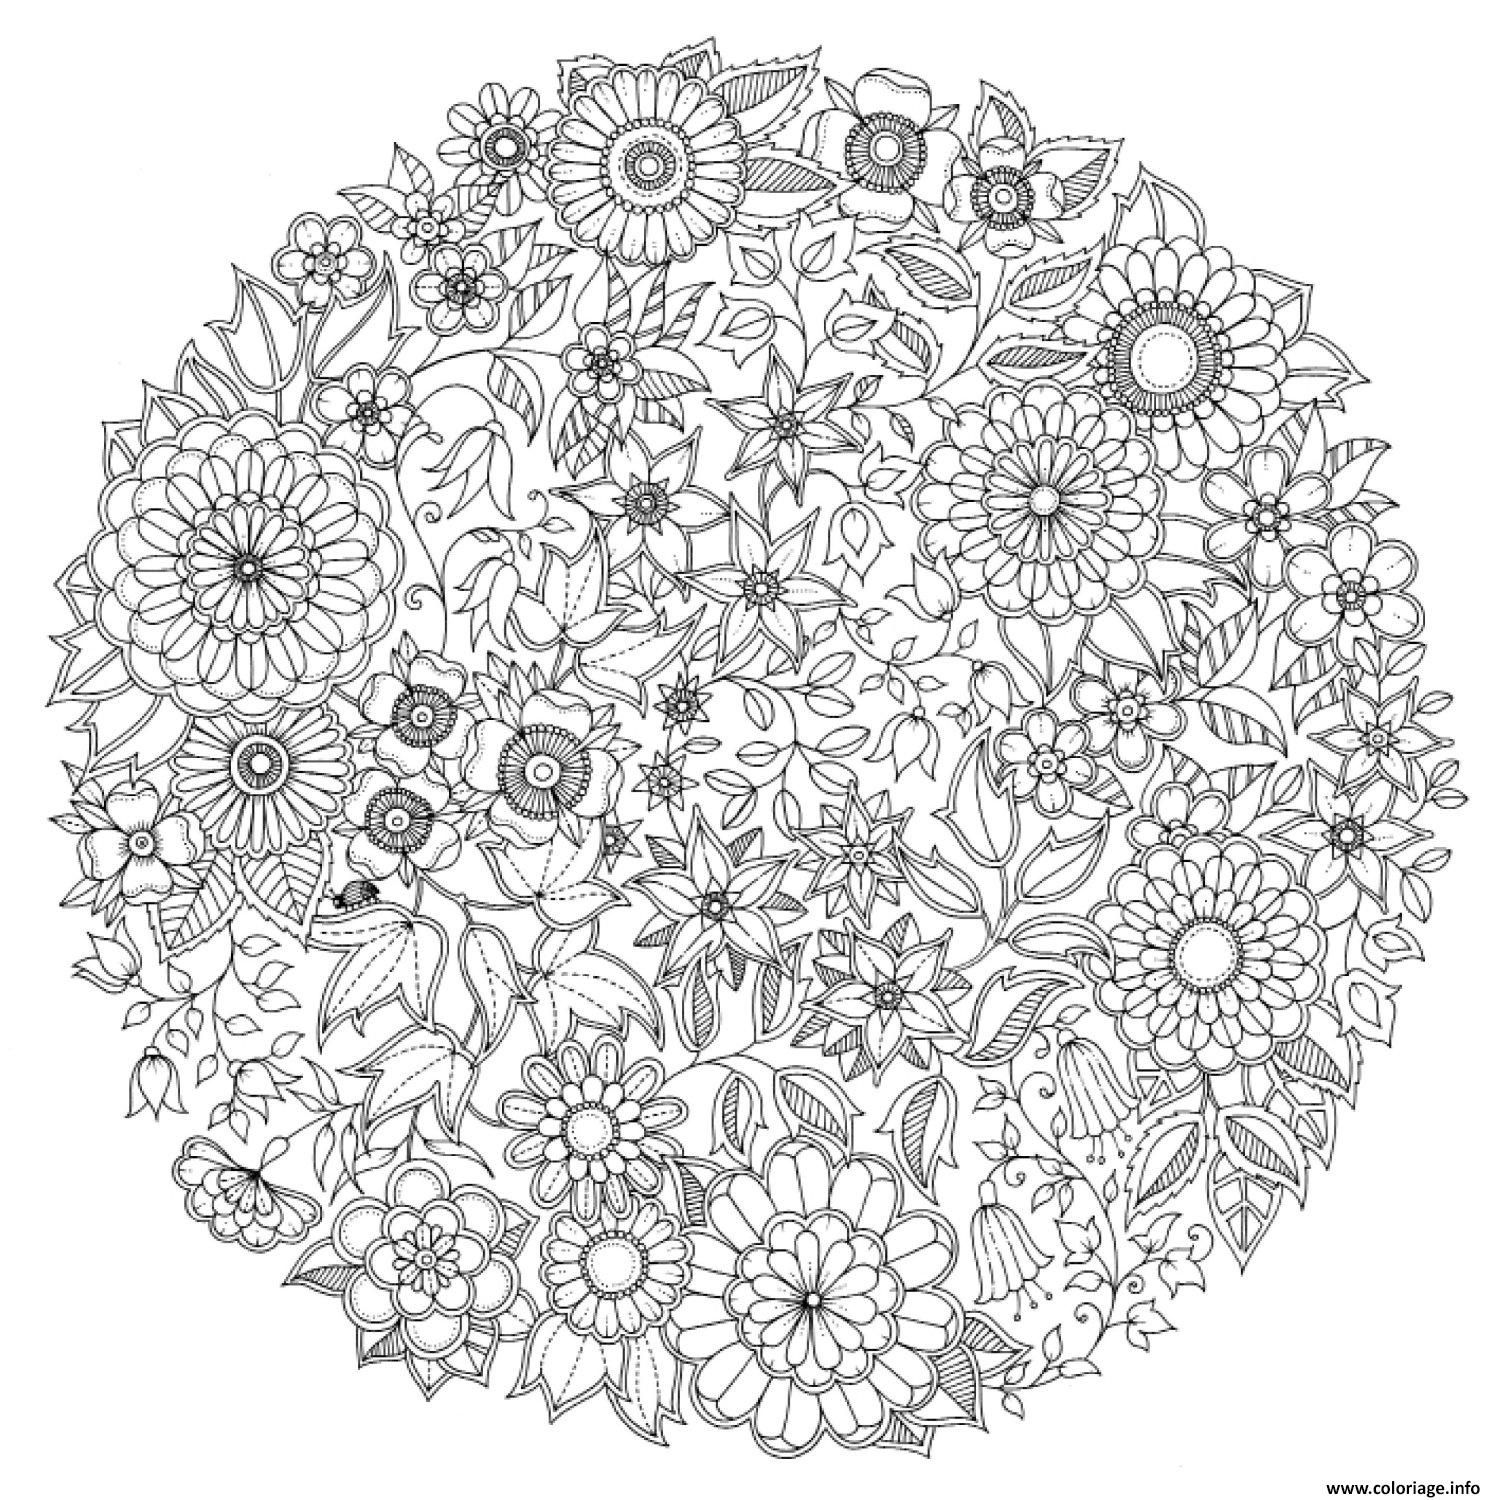 Coloriage art therapie 83 dessin - Coloriage art therapie a imprimer ...